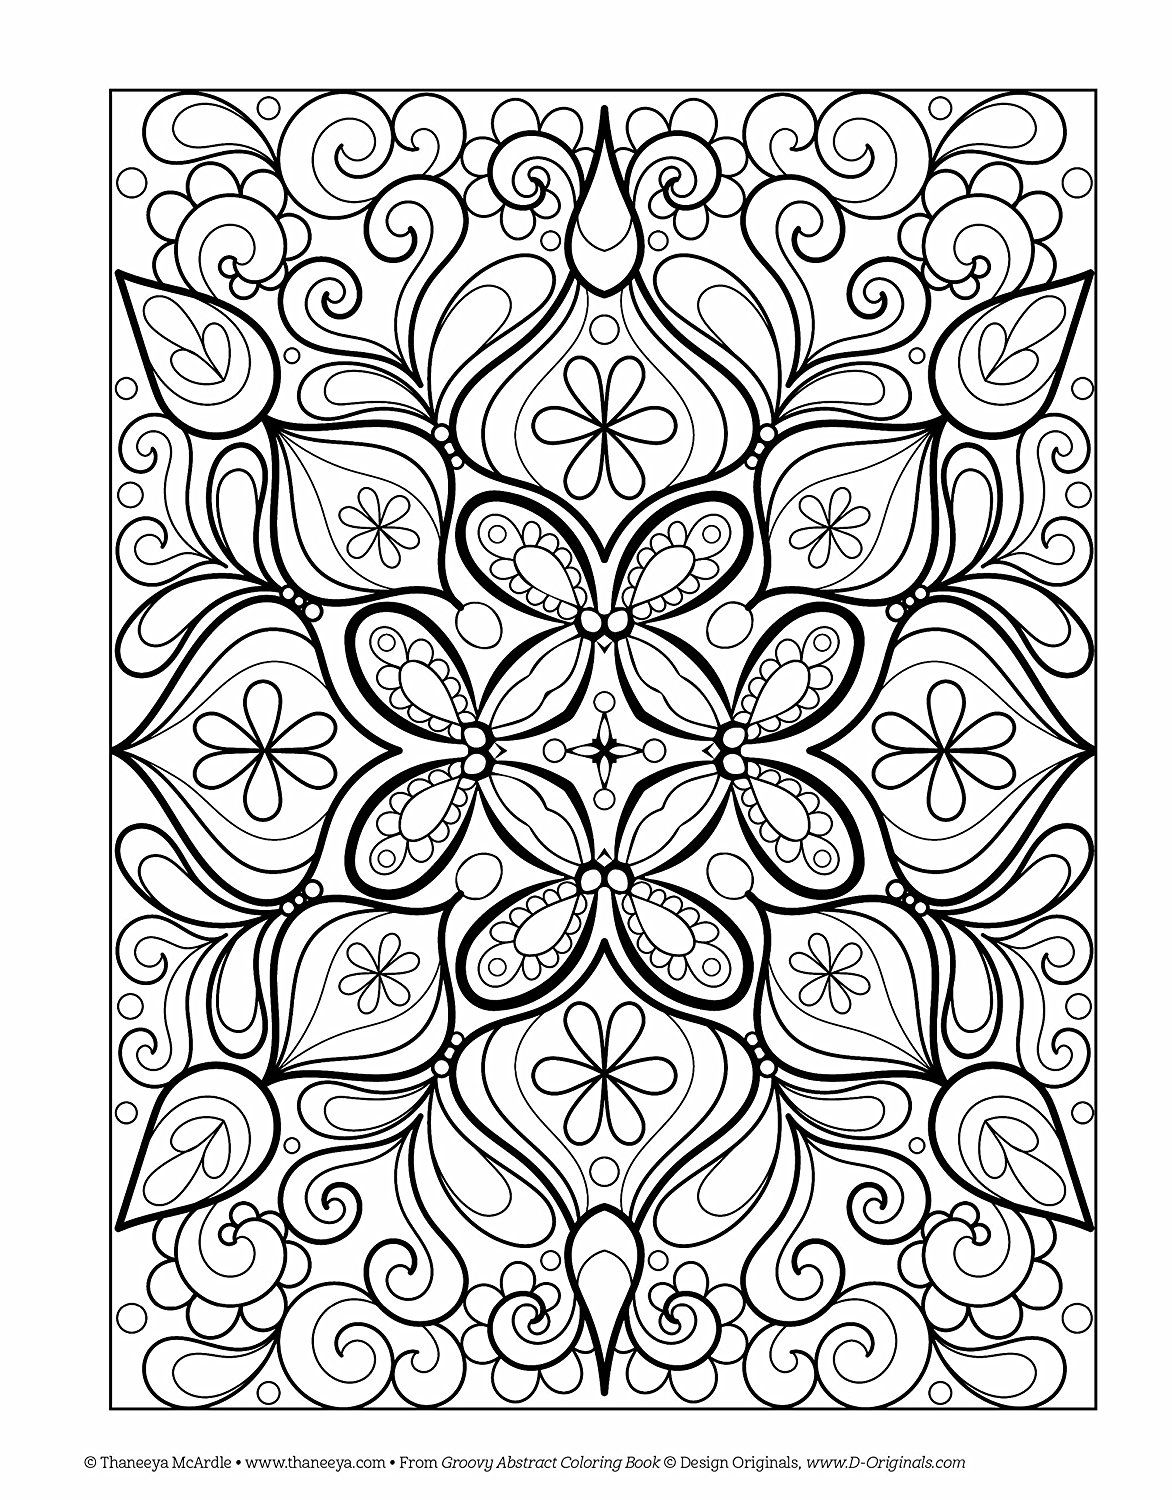 Groovy Abstract Coloring Book: Amazon.ca: Thaneeya McArdle: Books